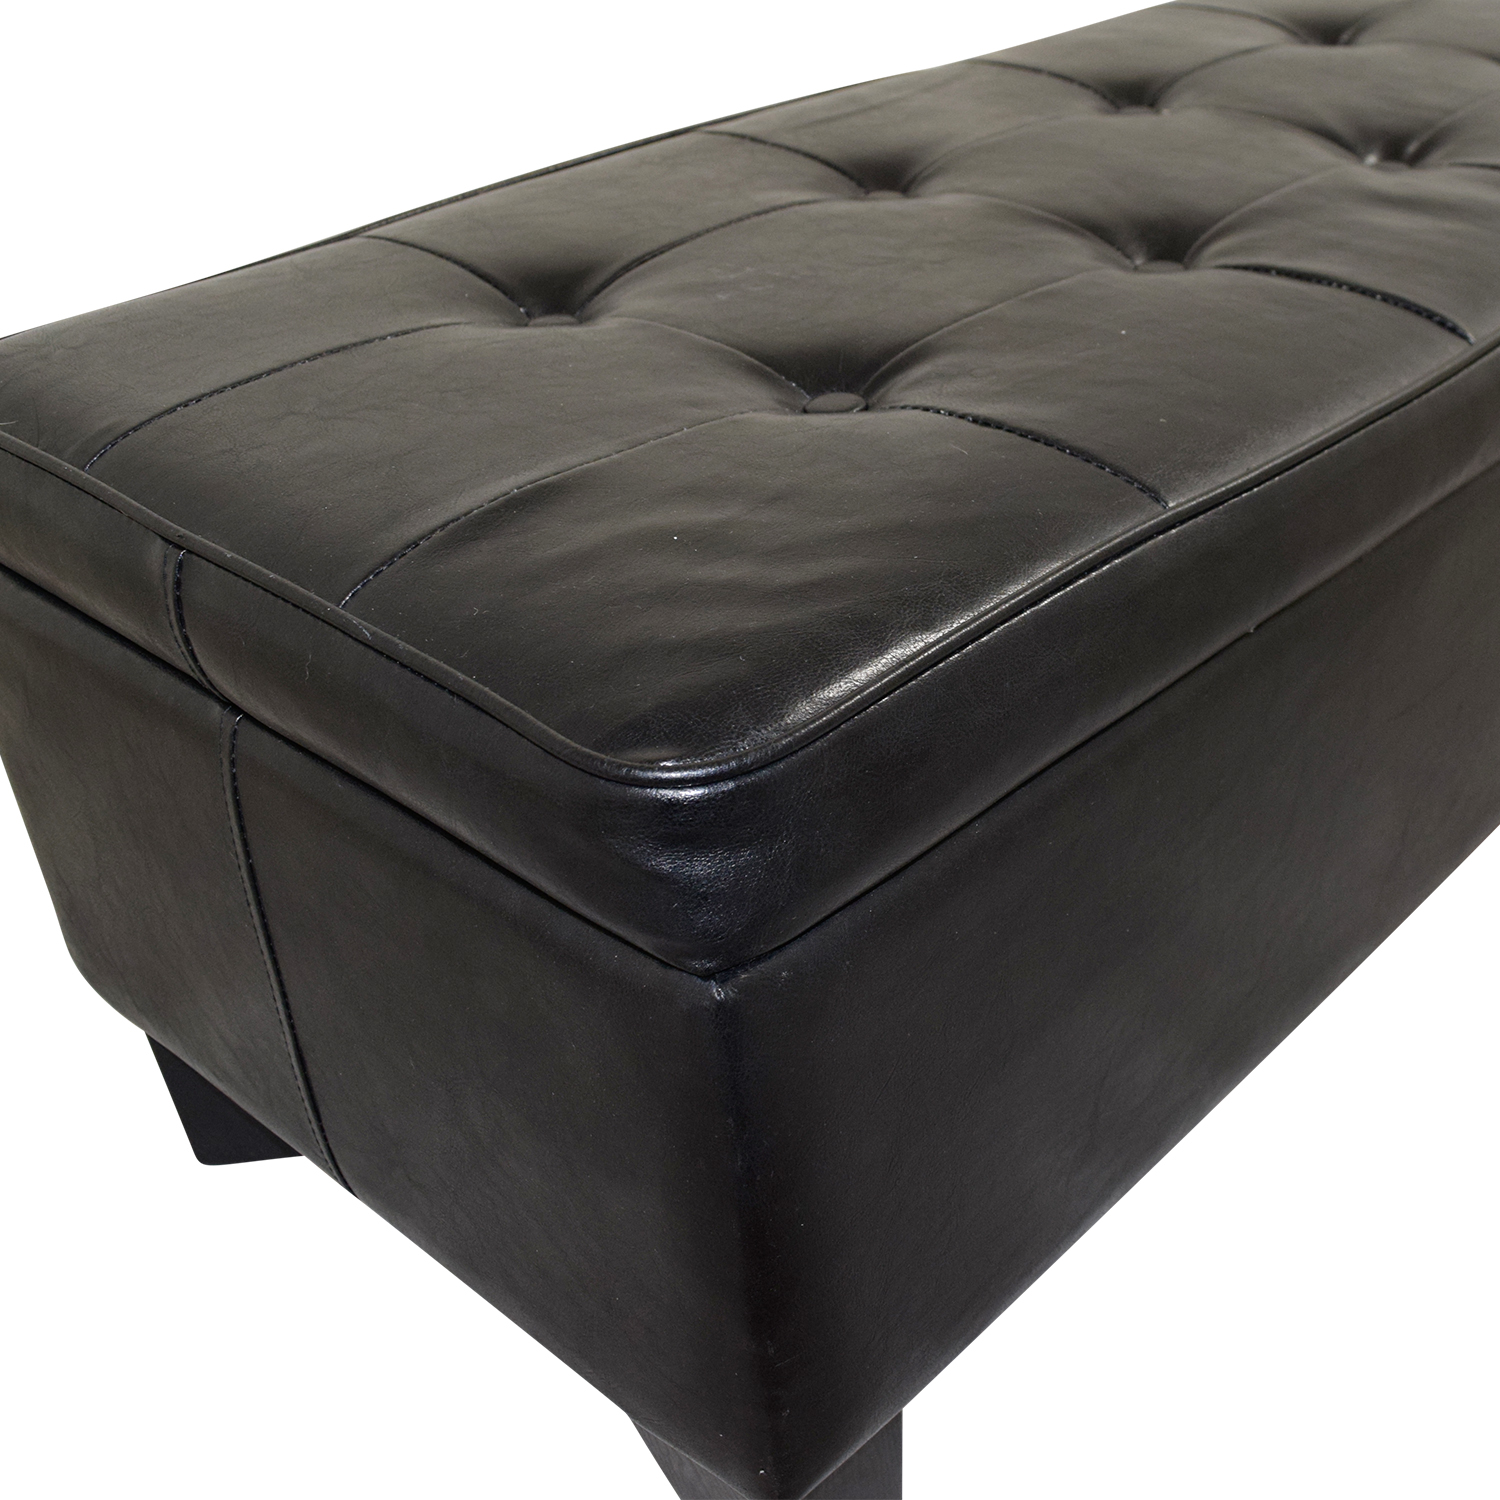 42 Off Black Tufted Faux Leather Ottoman With Storage